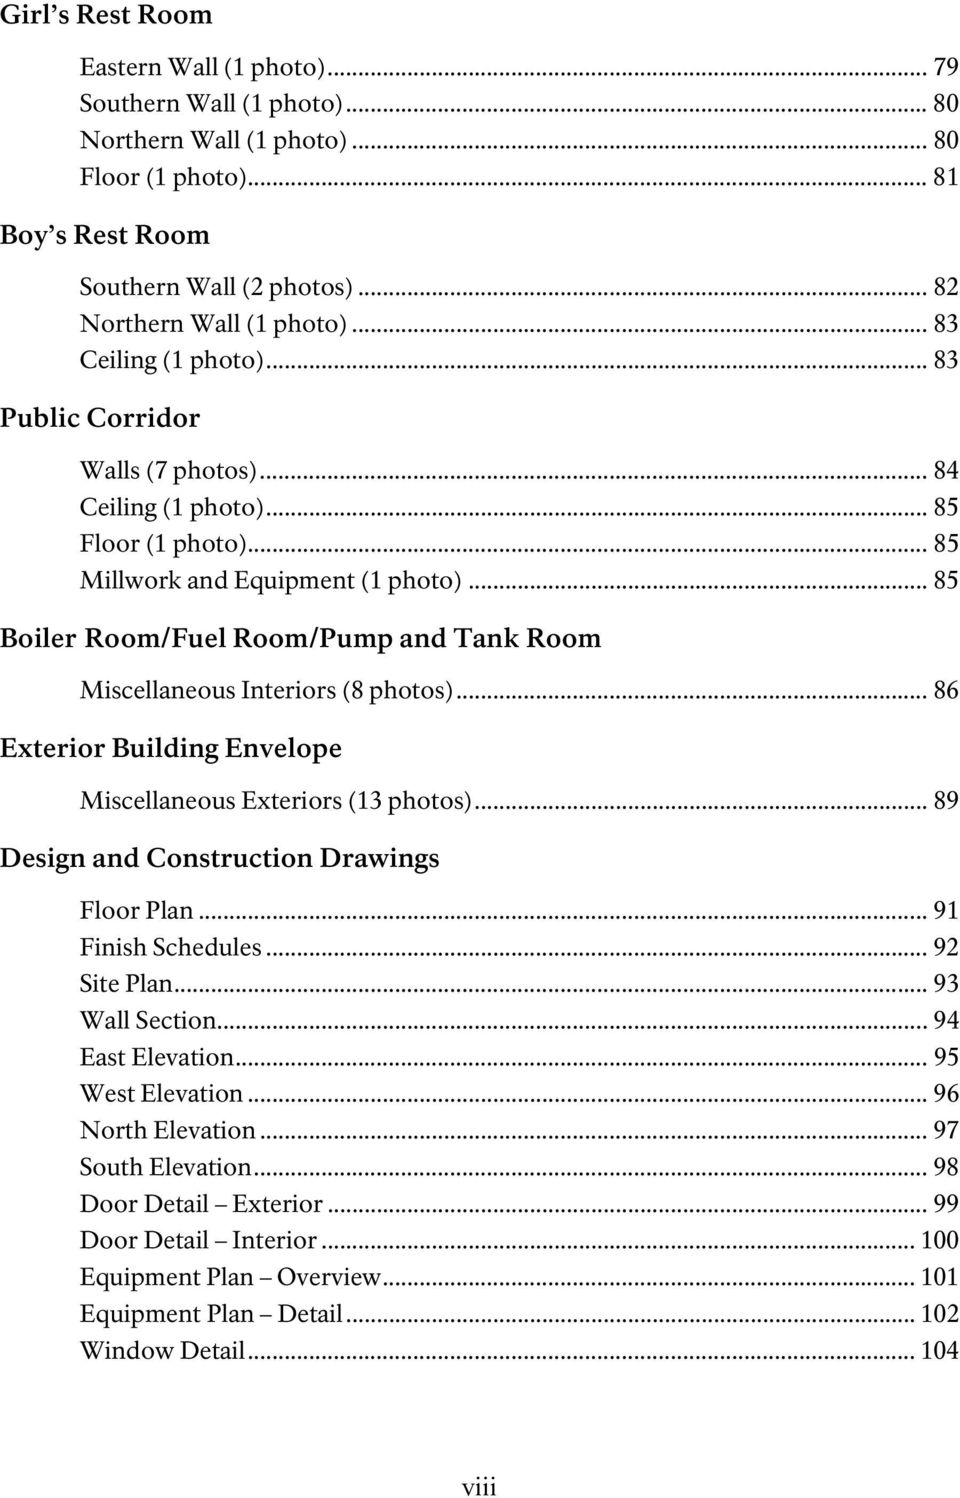 .. 85 Boiler Room/Fuel Room/Pump and Tank Room Miscellaneous Interiors (8 photos)... 86 Exterior Building Envelope Miscellaneous Exteriors (13 photos)... 89 Design and Construction Drawings Floor Plan.